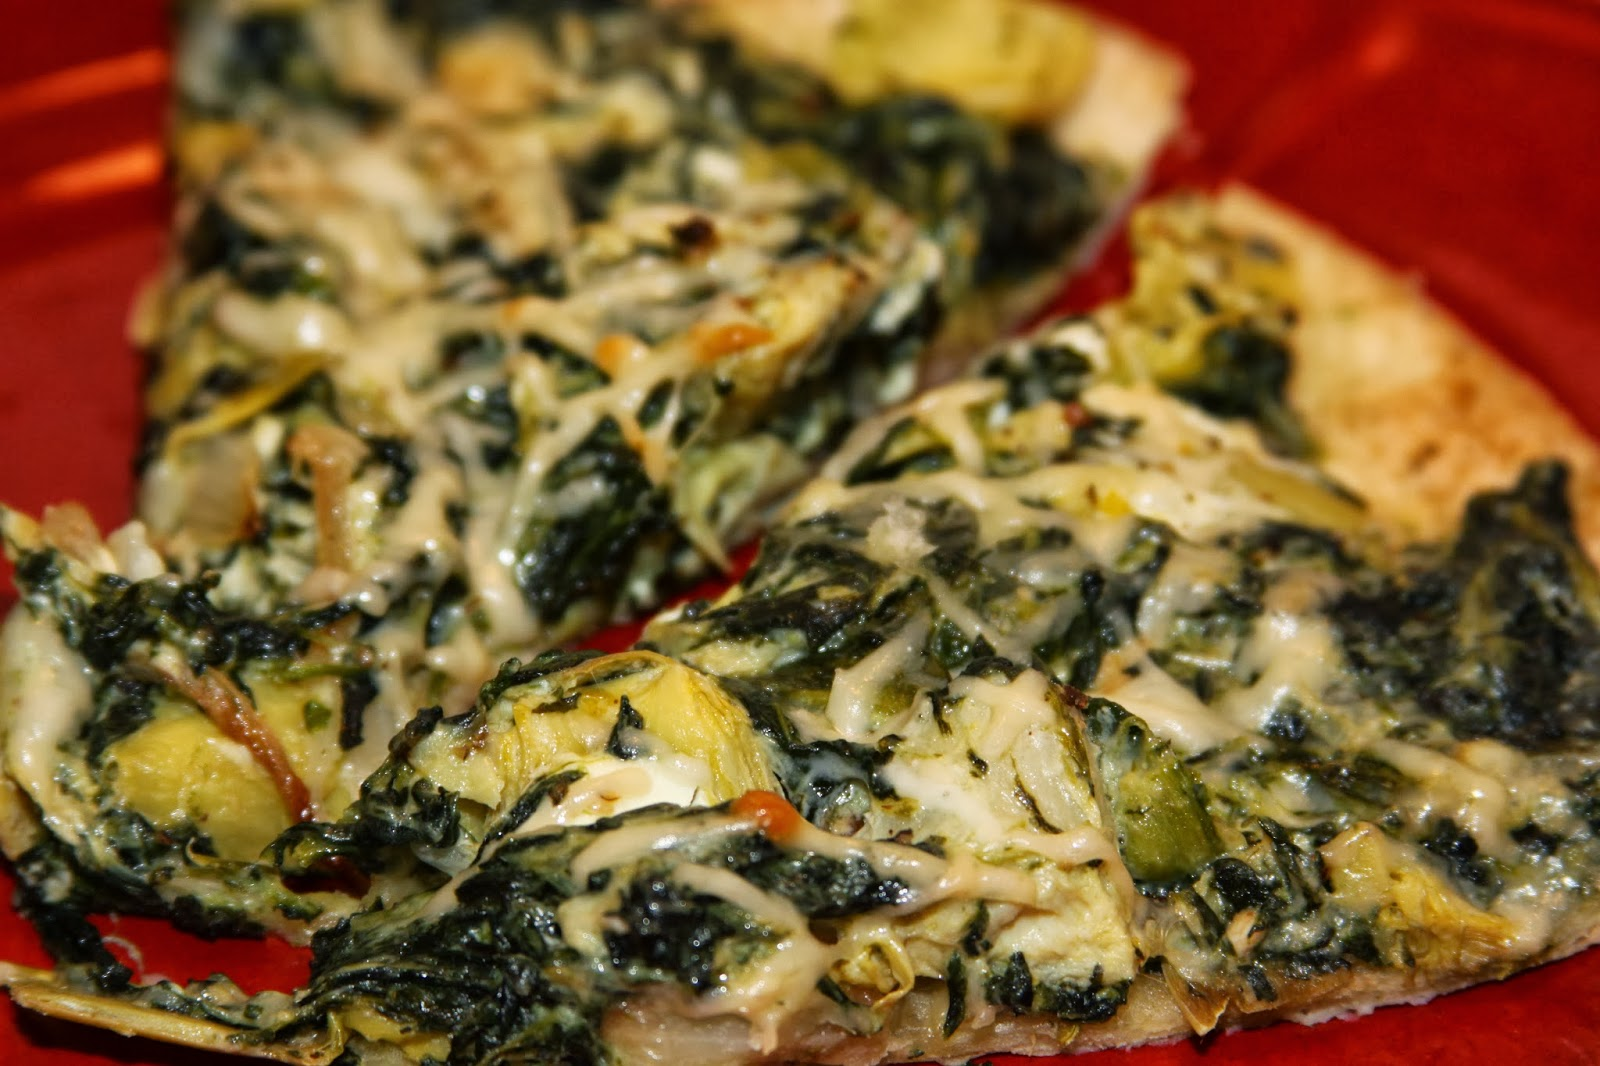 For the Love of Food: Meatless Monday: Cheesy Spinach Artichoke Pizza